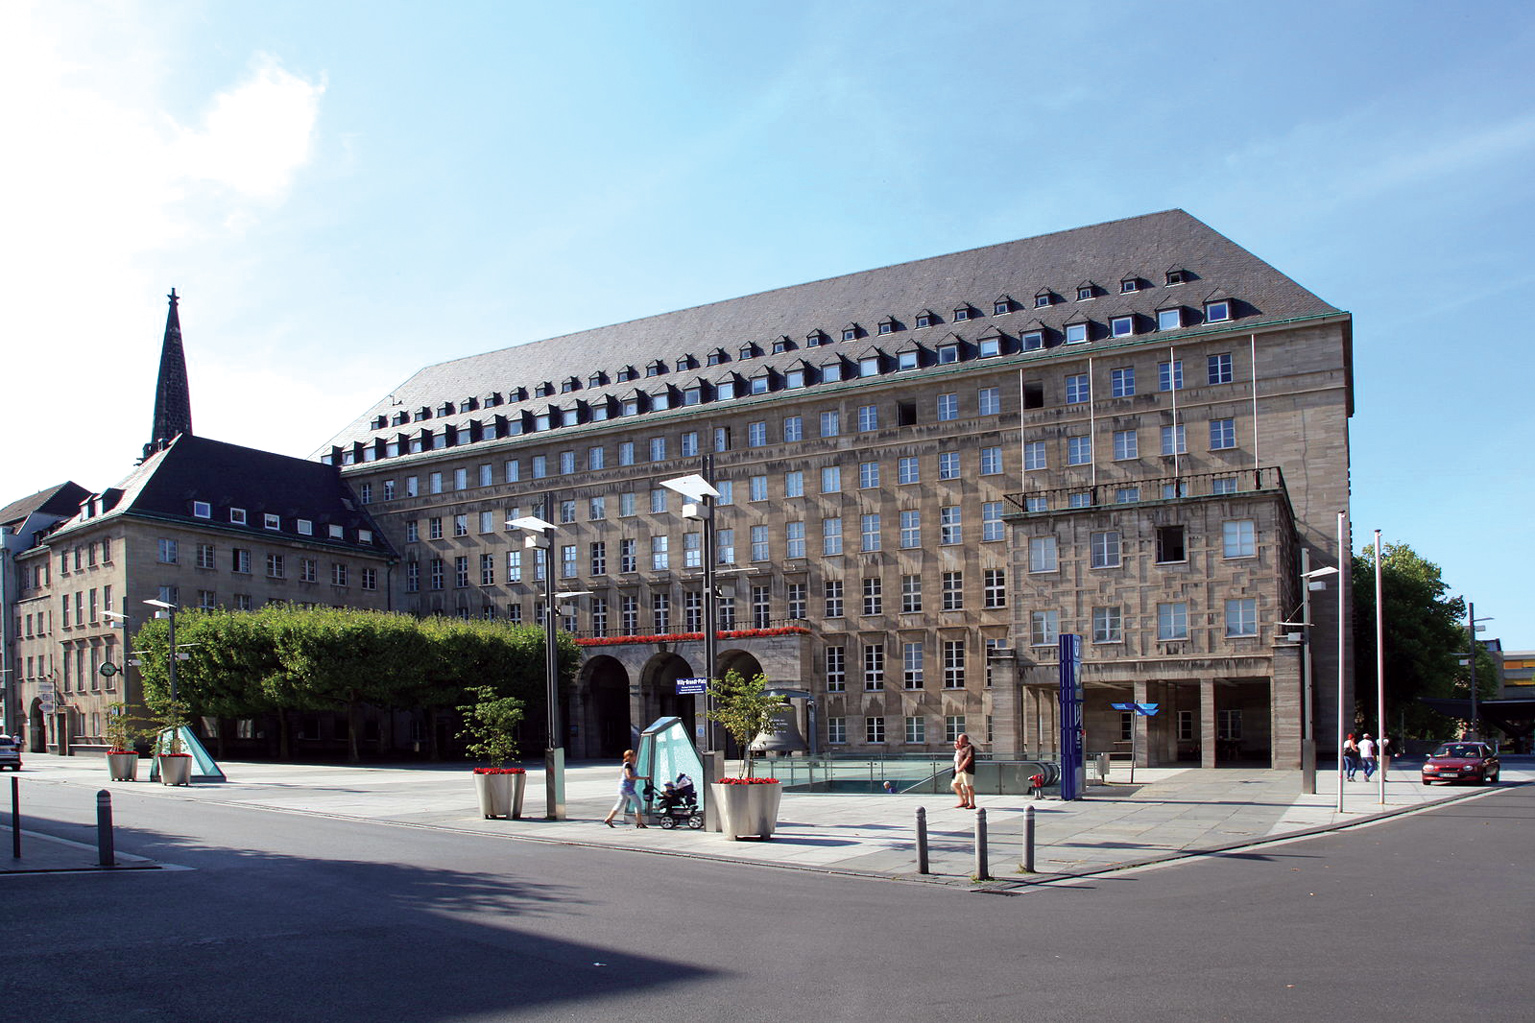 Frank Vincentz, https://upload.wikimedia.org/wikipedia/commons/thumb/3/3a/Bochum_-_Willy-Brandt-Platz_%2B_Rathaus_03_ies.jpg/1599px-Bochum_-_Willy-Brandt-Platz_%2B_Rathaus_03_ies.jpg https://creativecommons.org/licenses/by-sa/3.0/deed.de